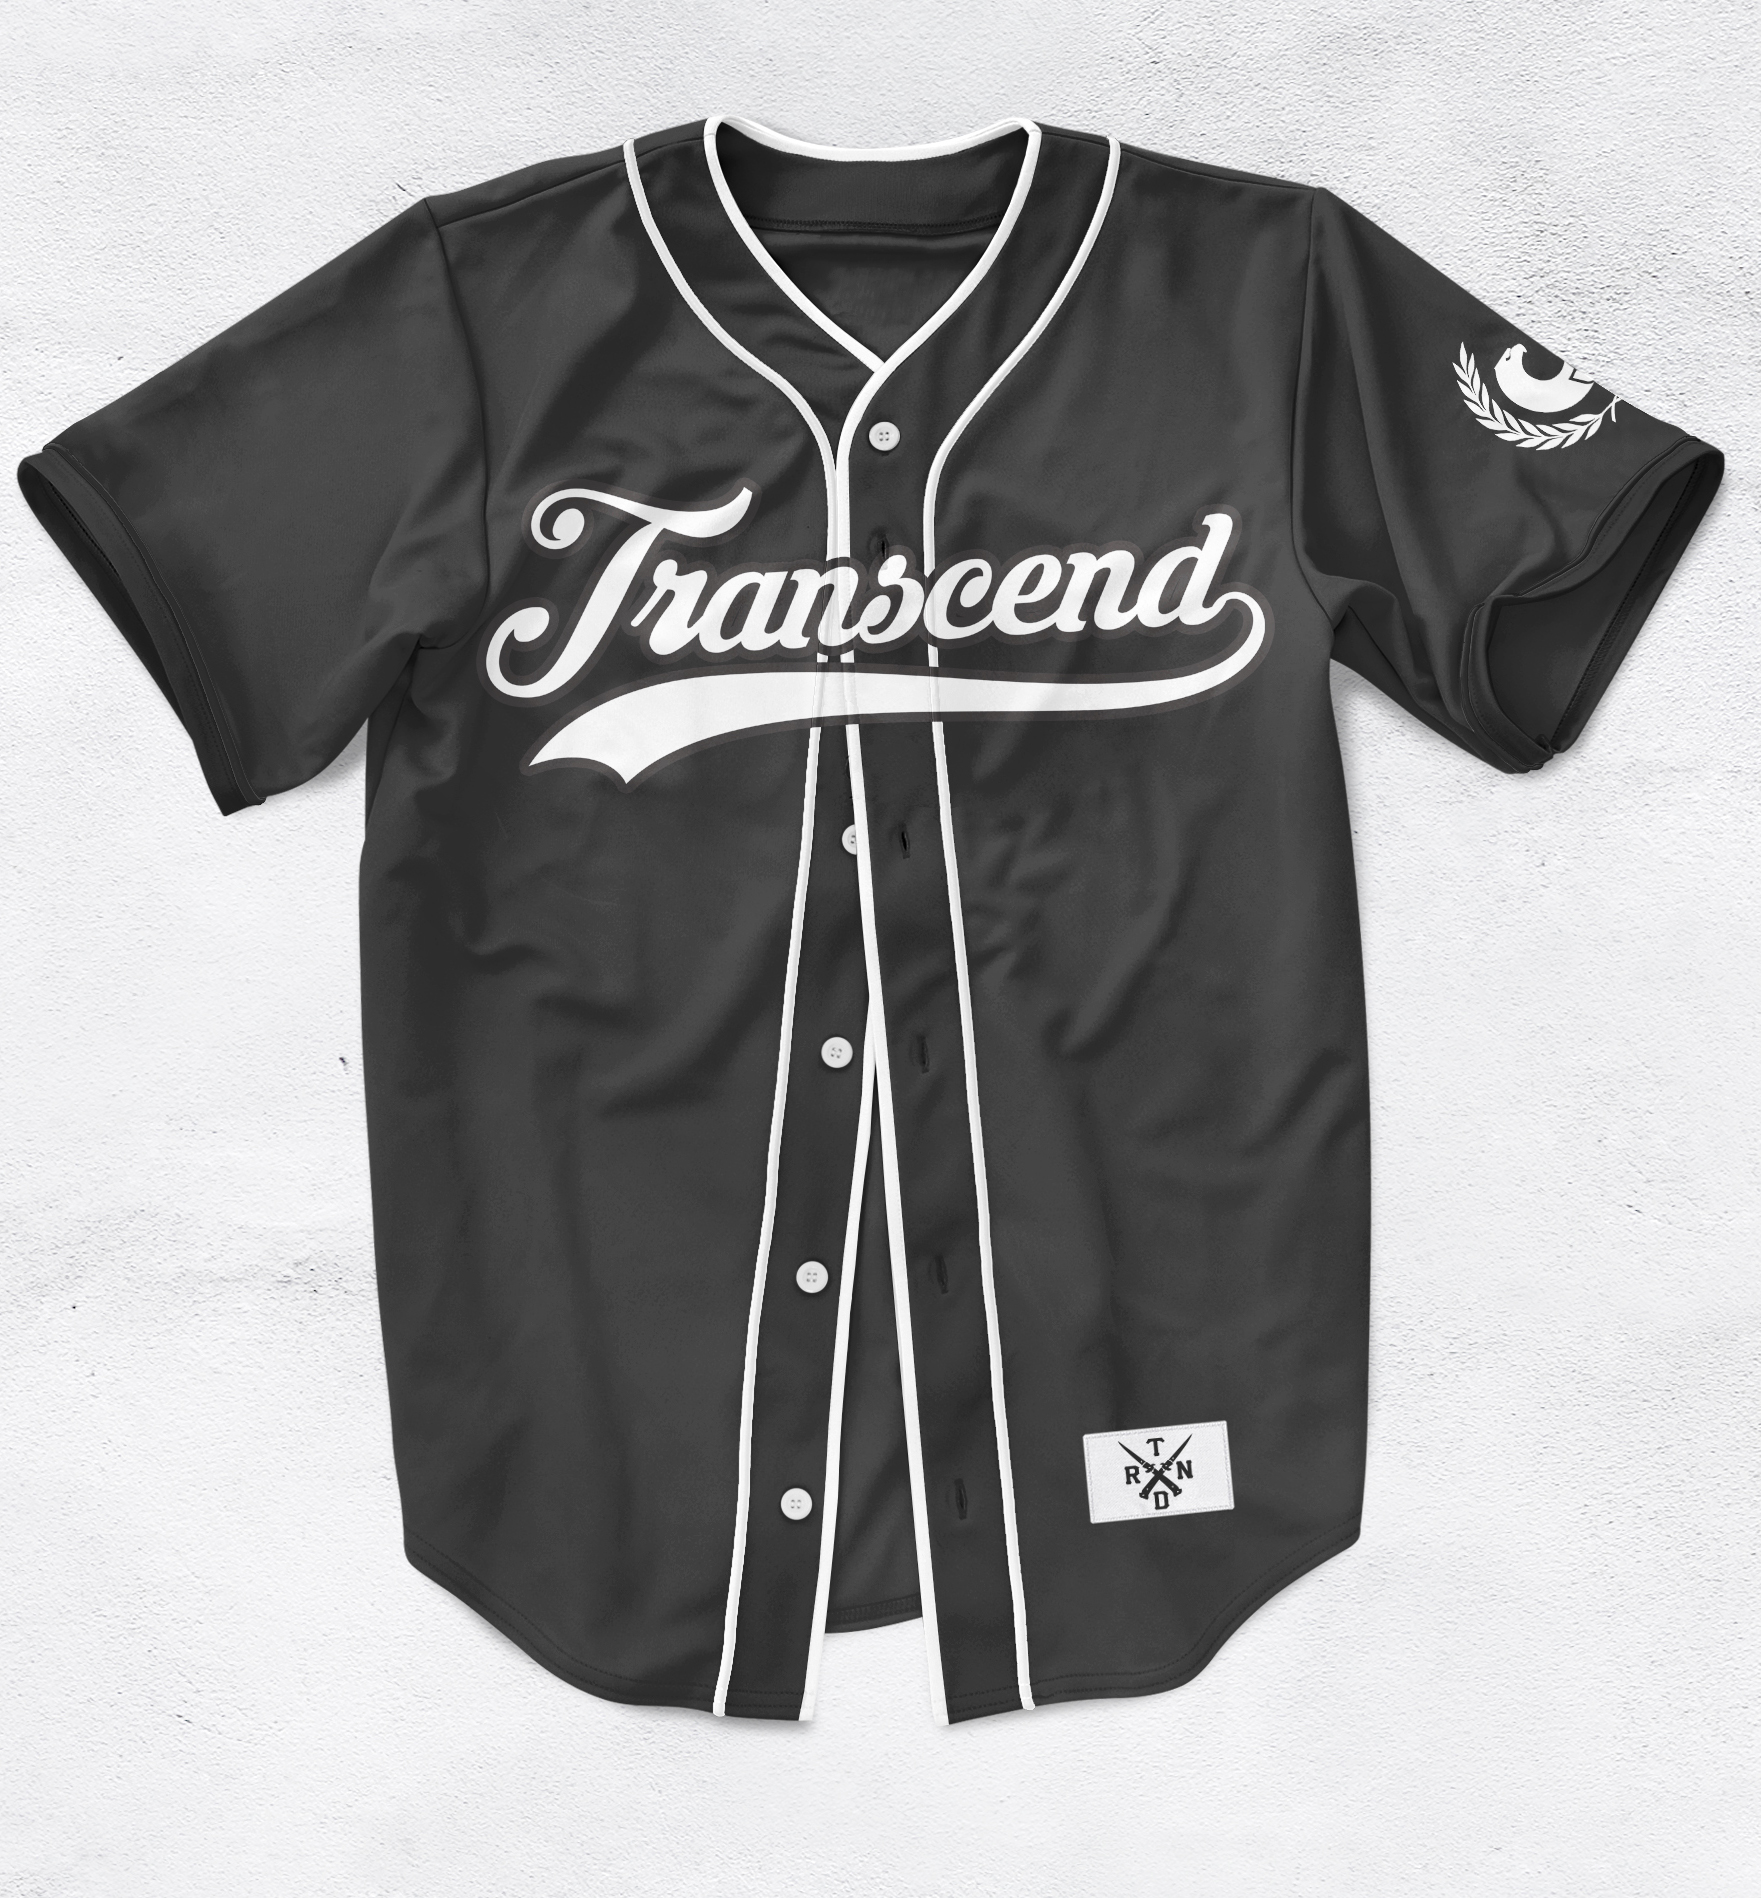 Transcend all star jersey transcend online store for All star t shirts